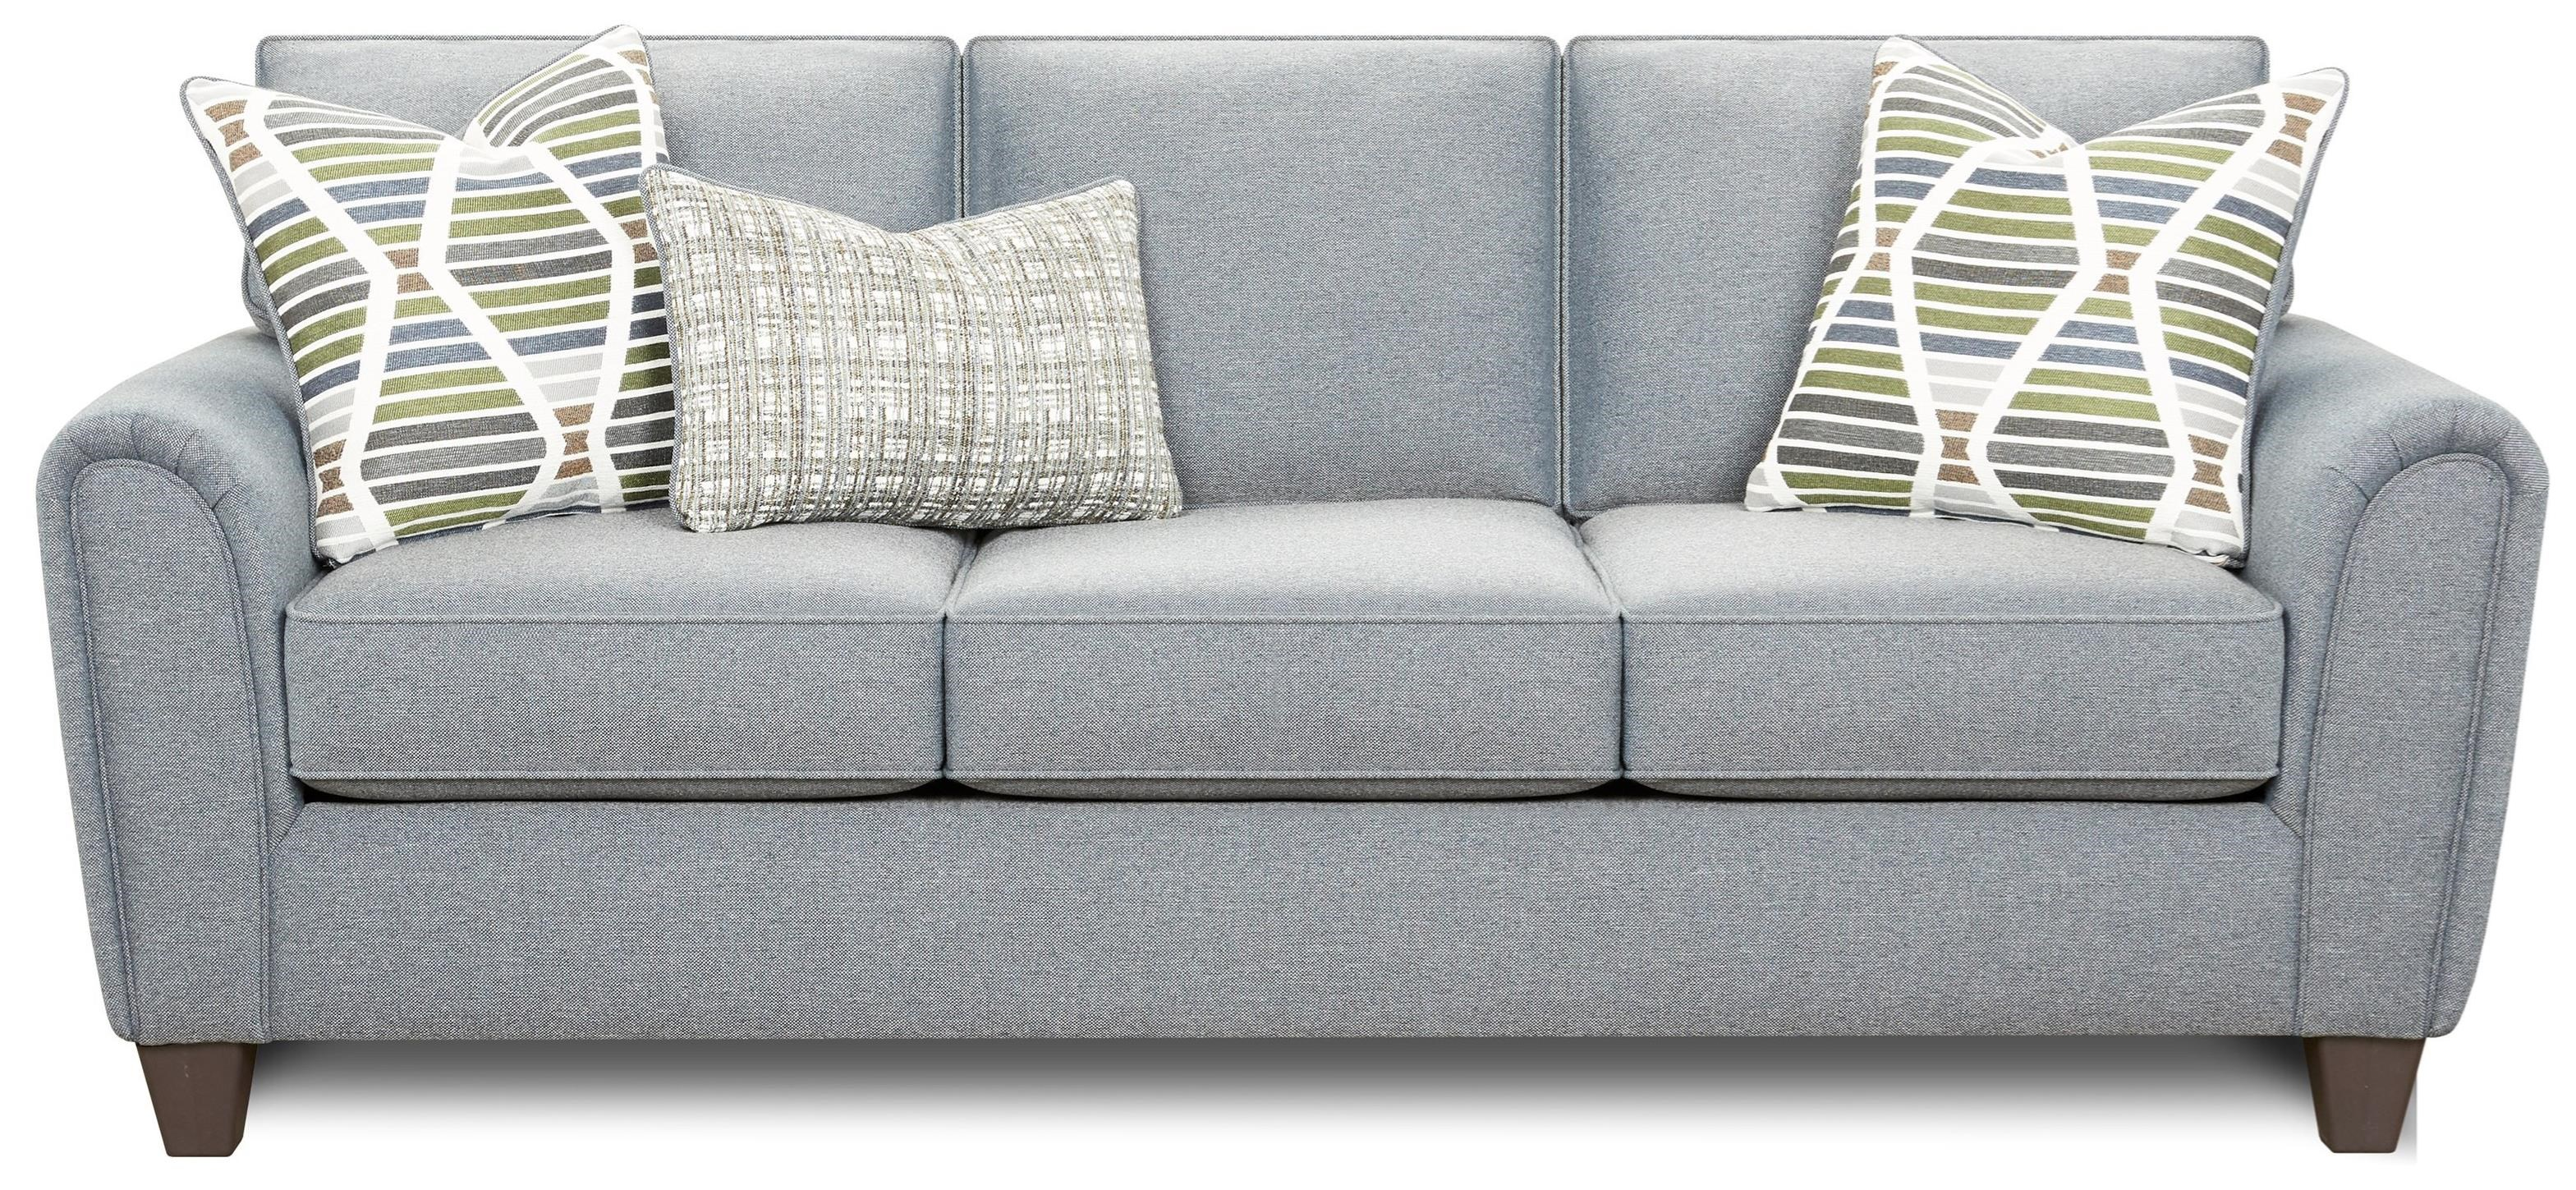 49-00 Sofa by Fusion Furniture at Furniture Superstore - Rochester, MN